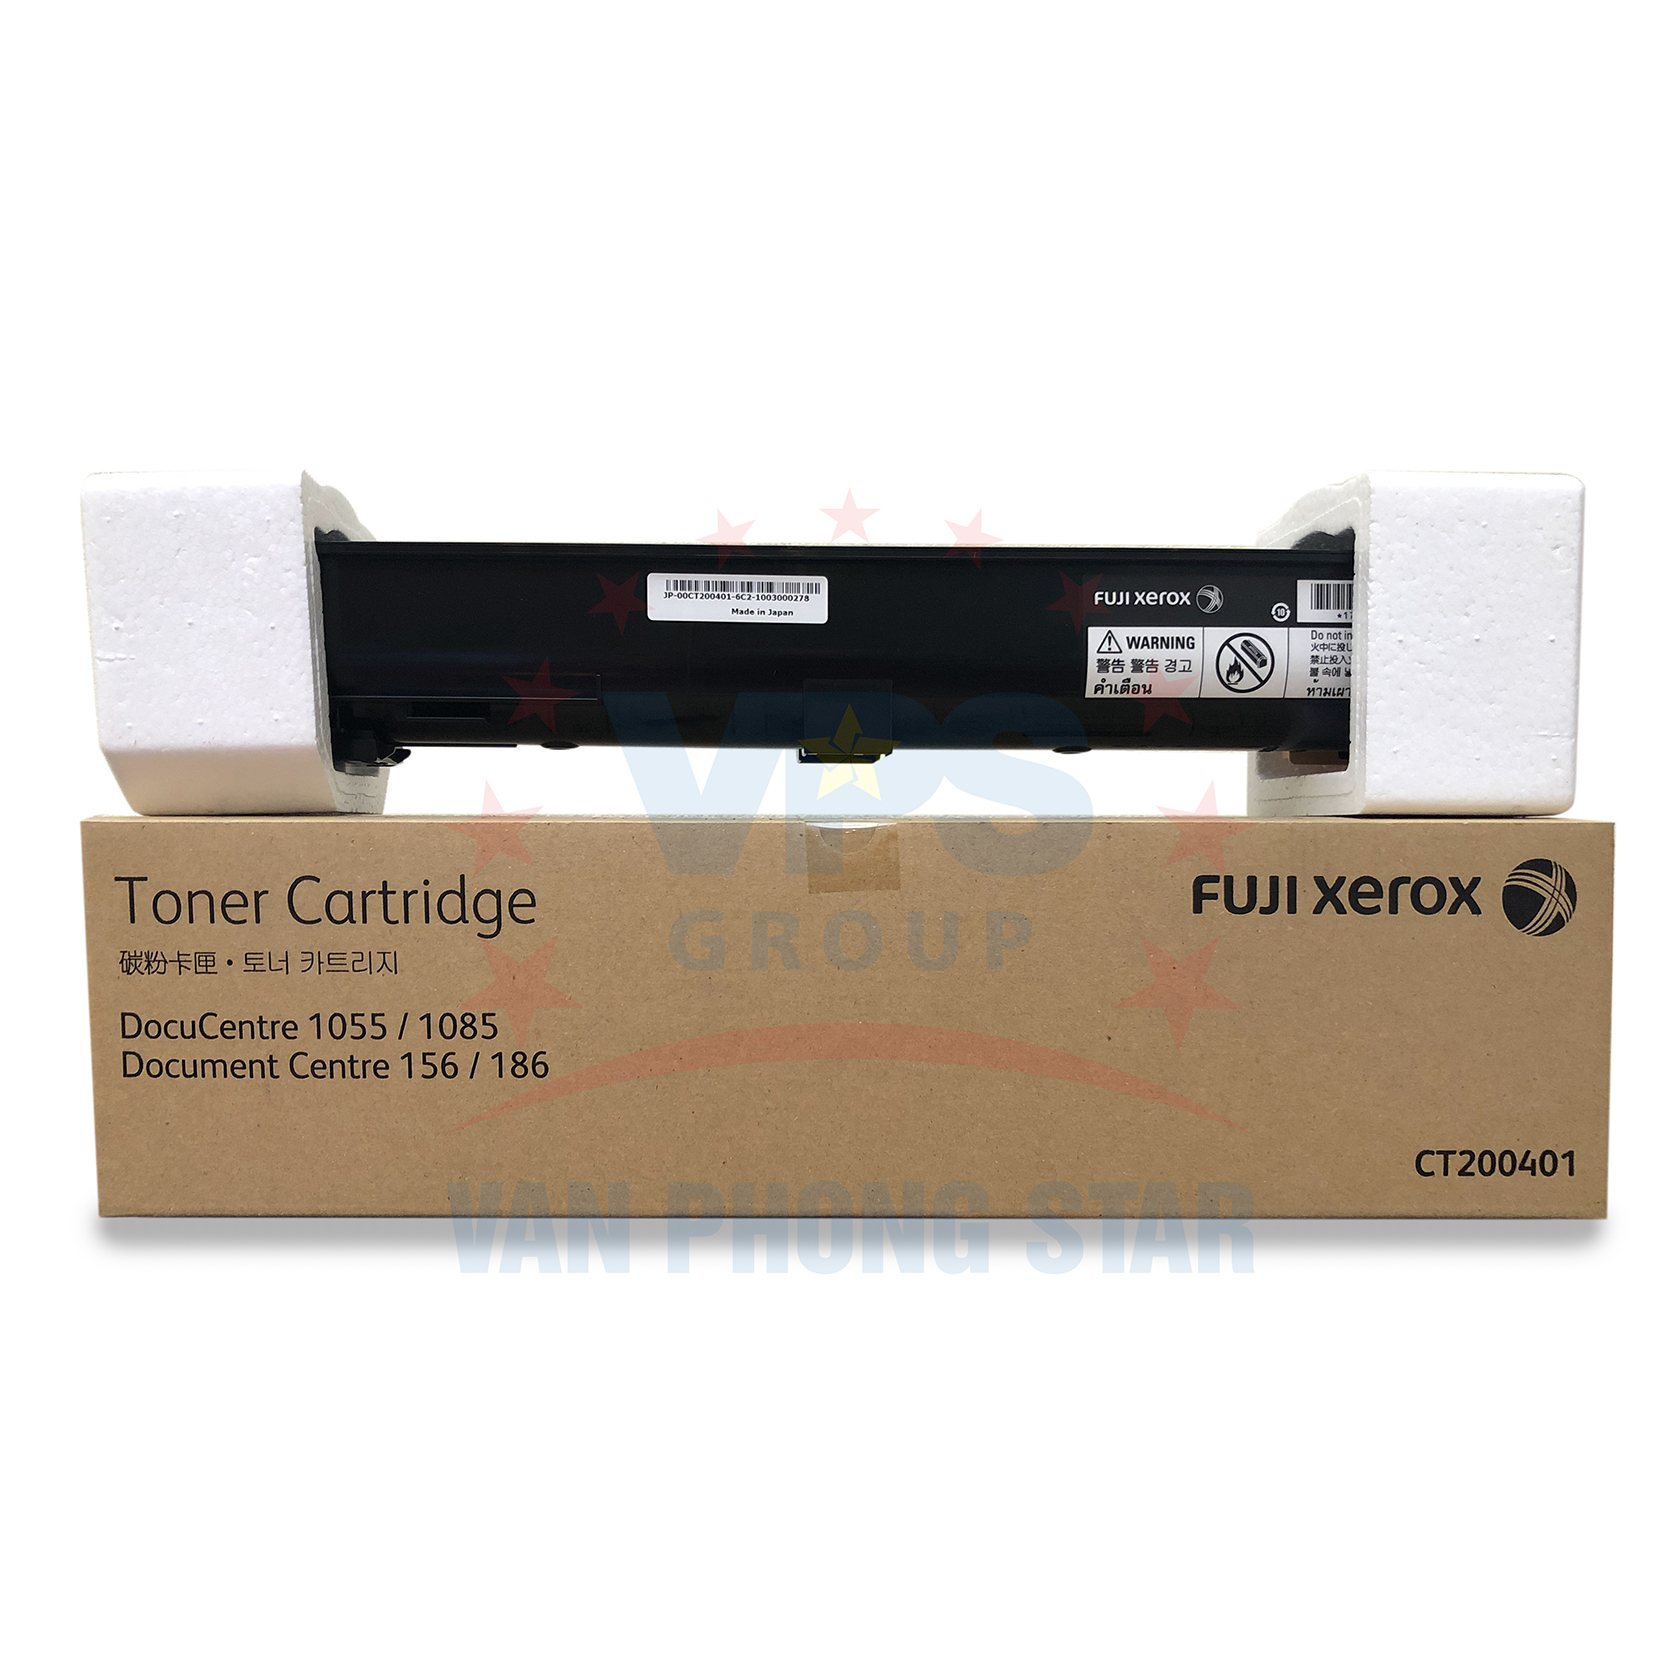 muc-dung-cho-may-xerox-docucentre-156-186-toner-cartridge-docucentre-156-186